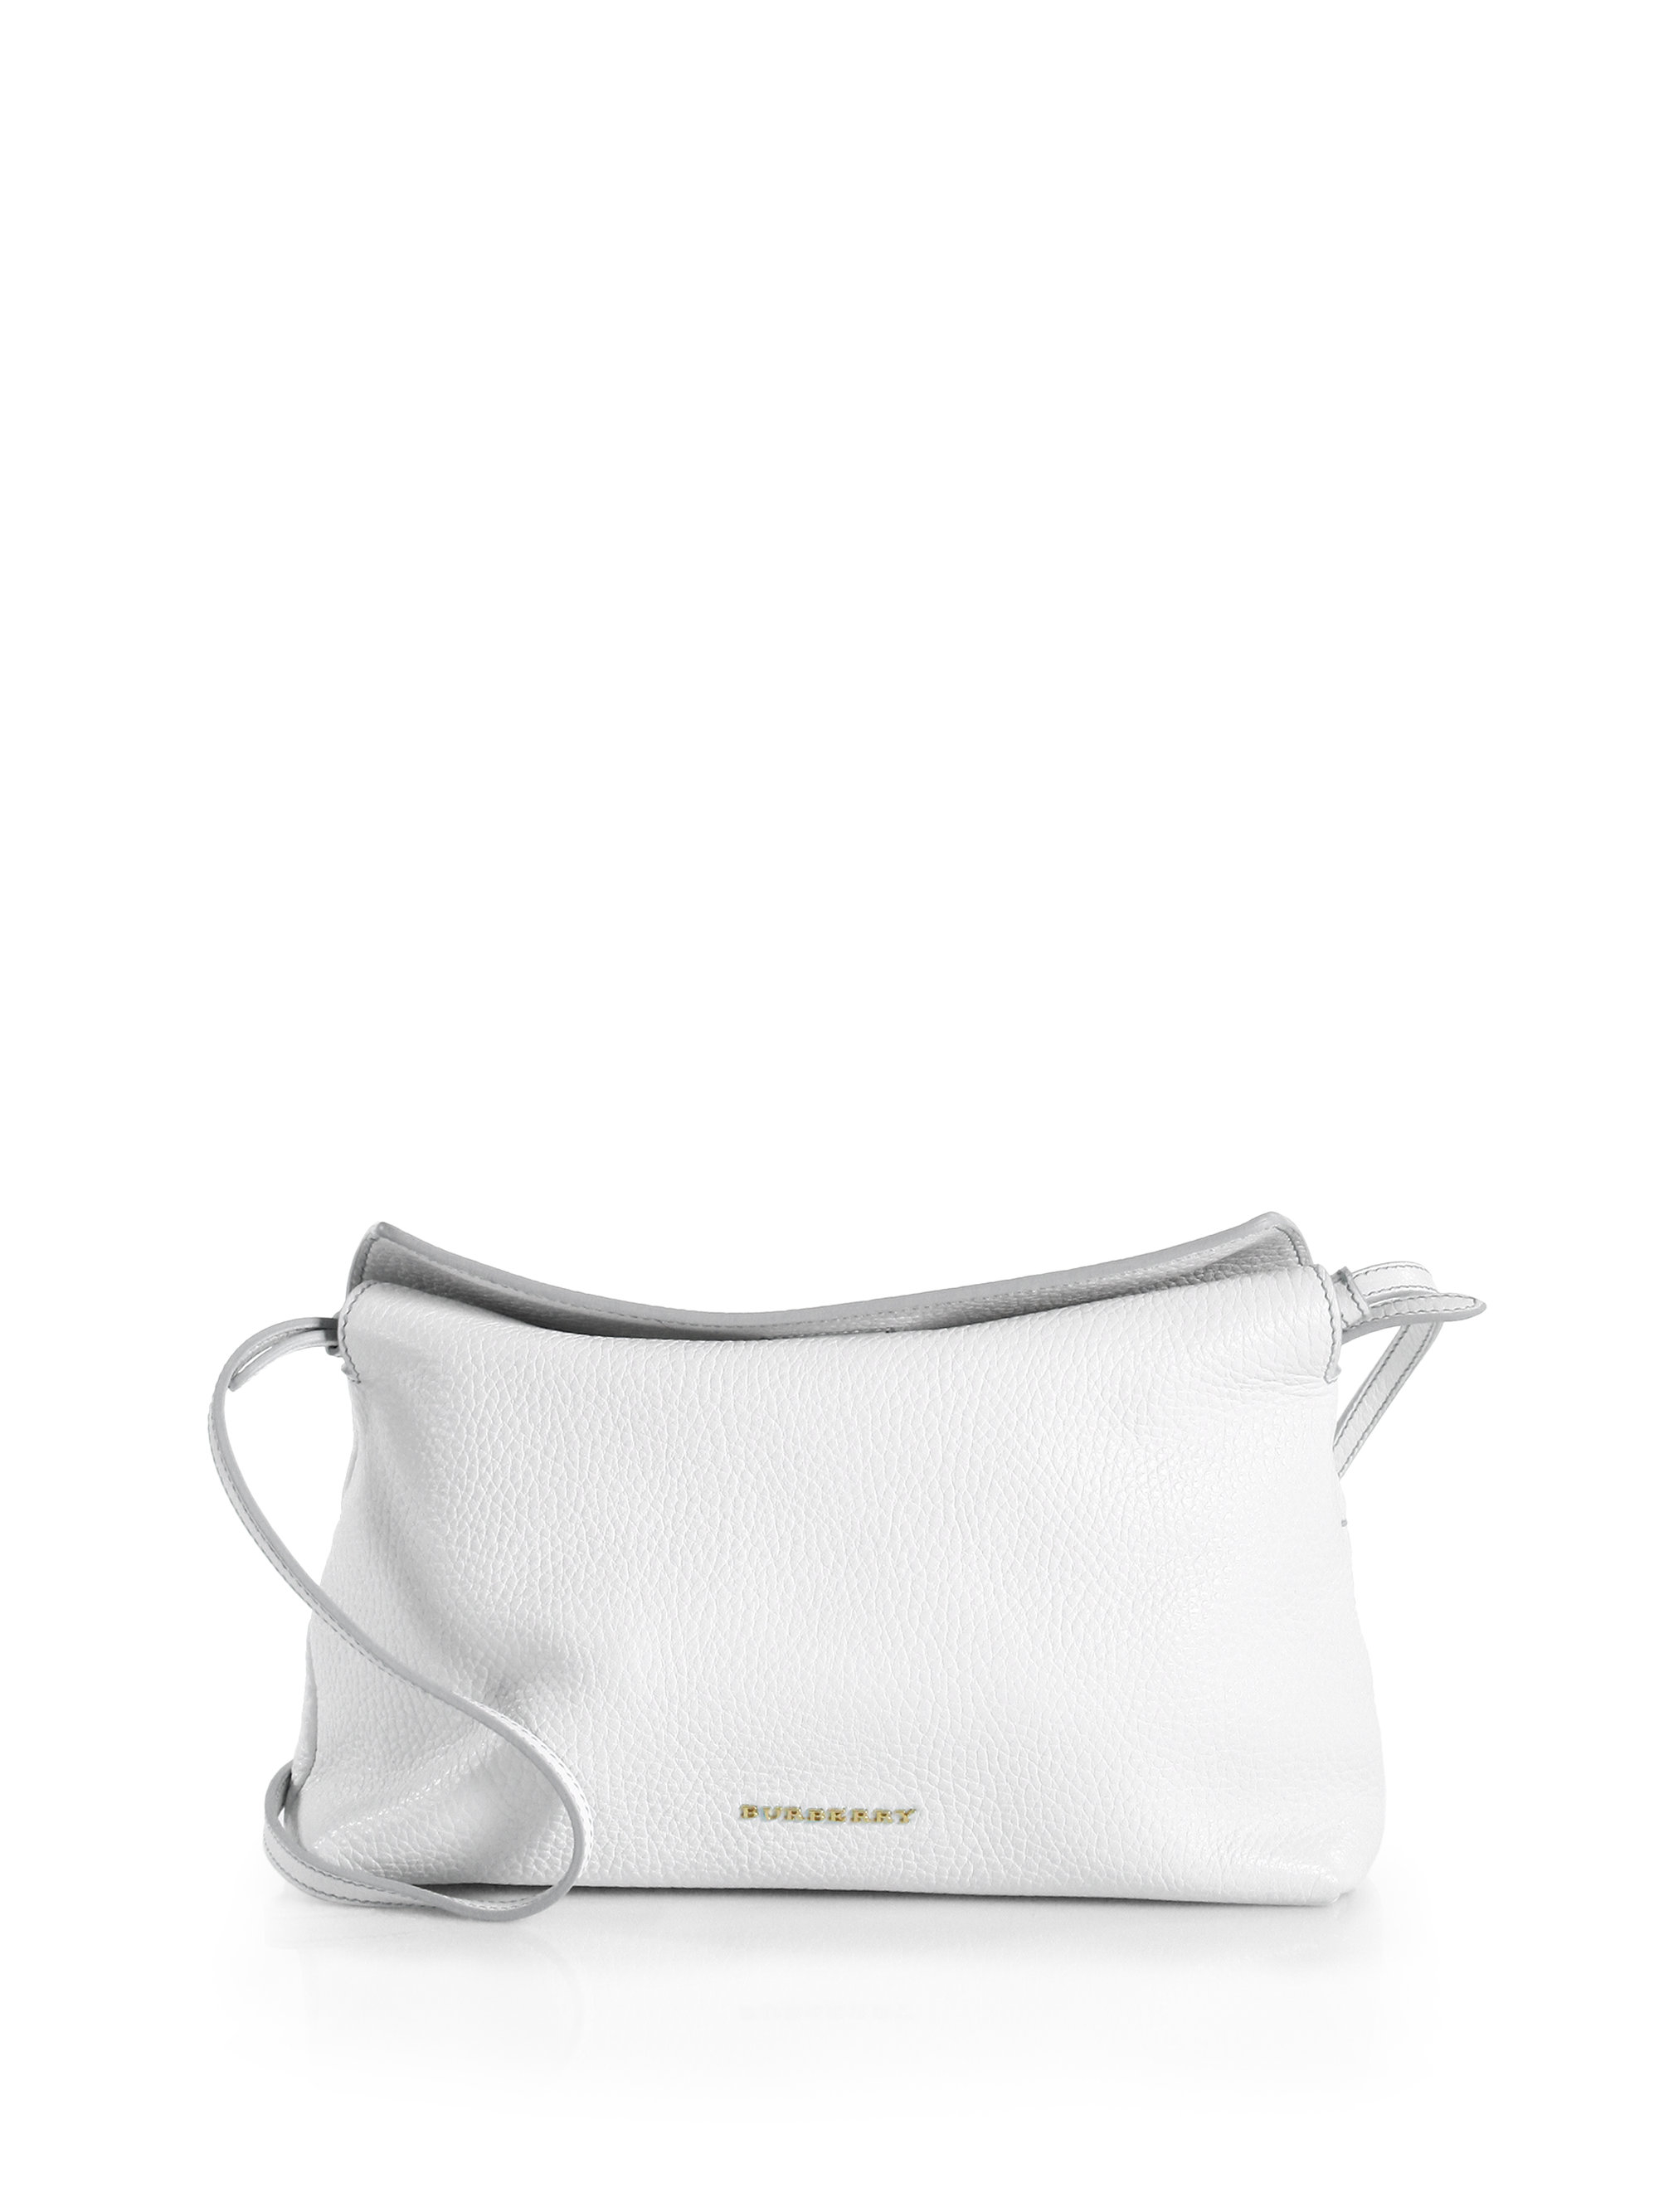 267b7c55ea0b Lyst - Burberry Leah Small Shoulder Bag in White